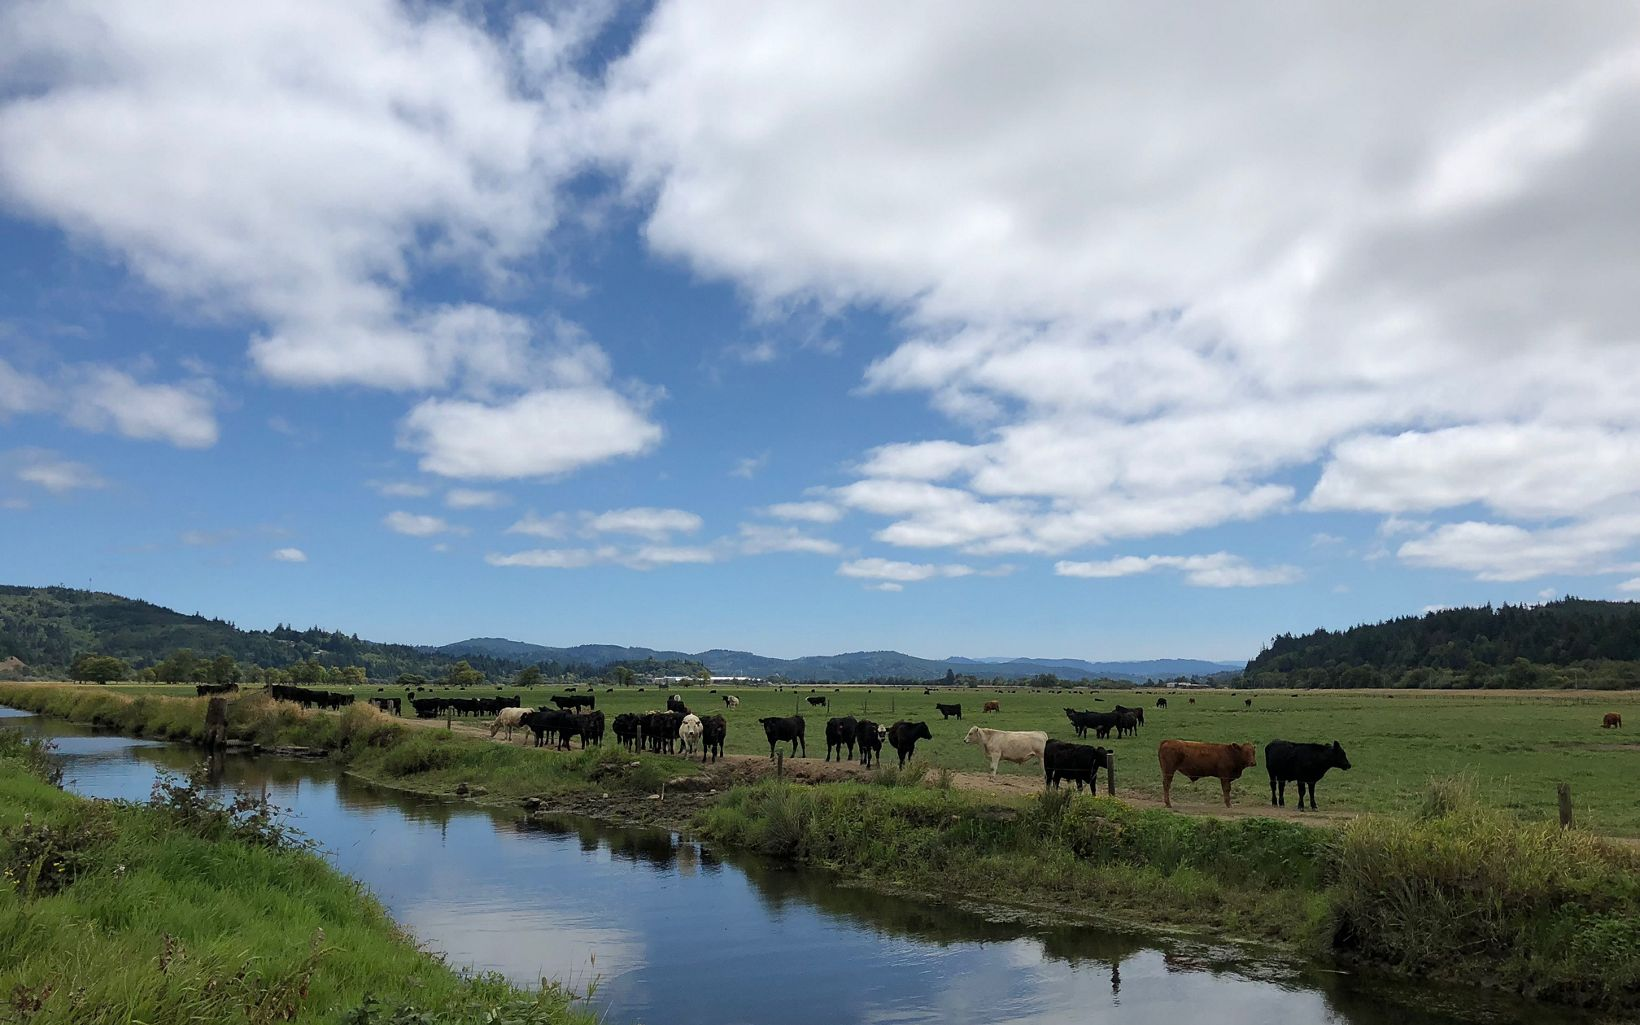 Cows graze near the Coquille River in Oregon